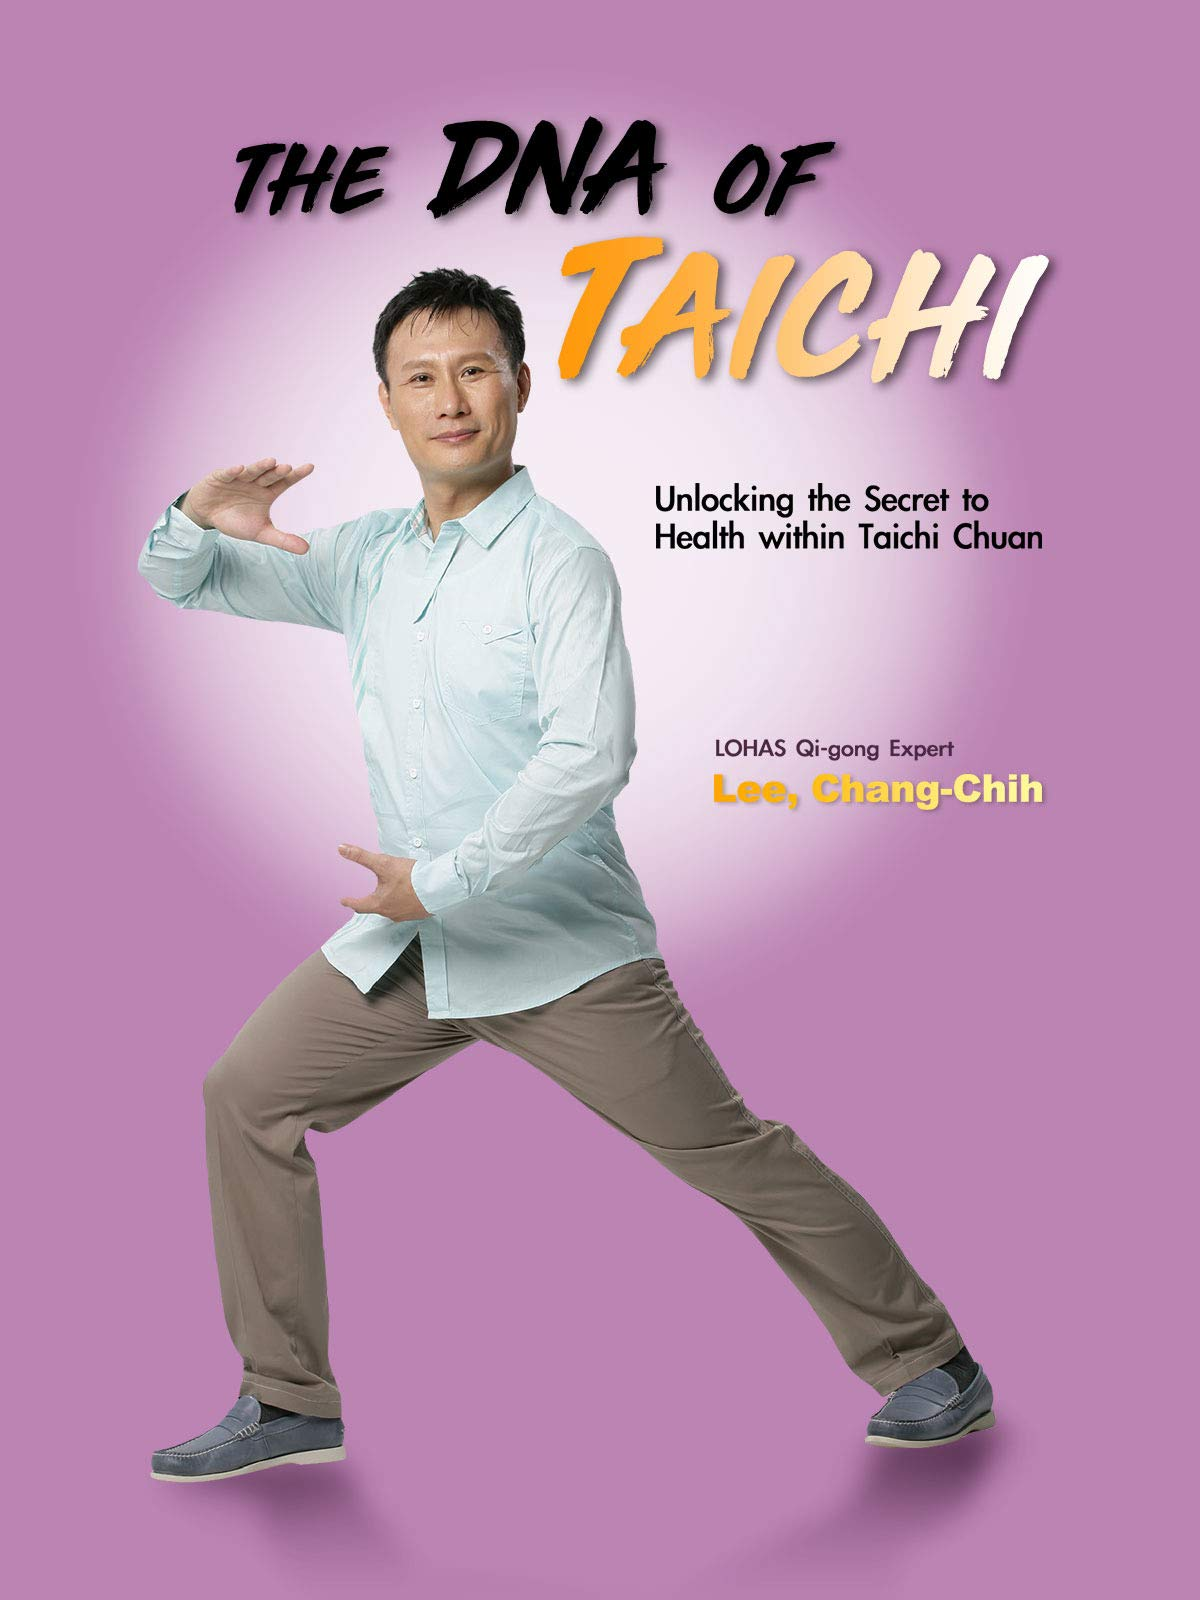 The DNA of Taichi: Unlocking the Secret to Health within Taichi Chuan (English Dub)